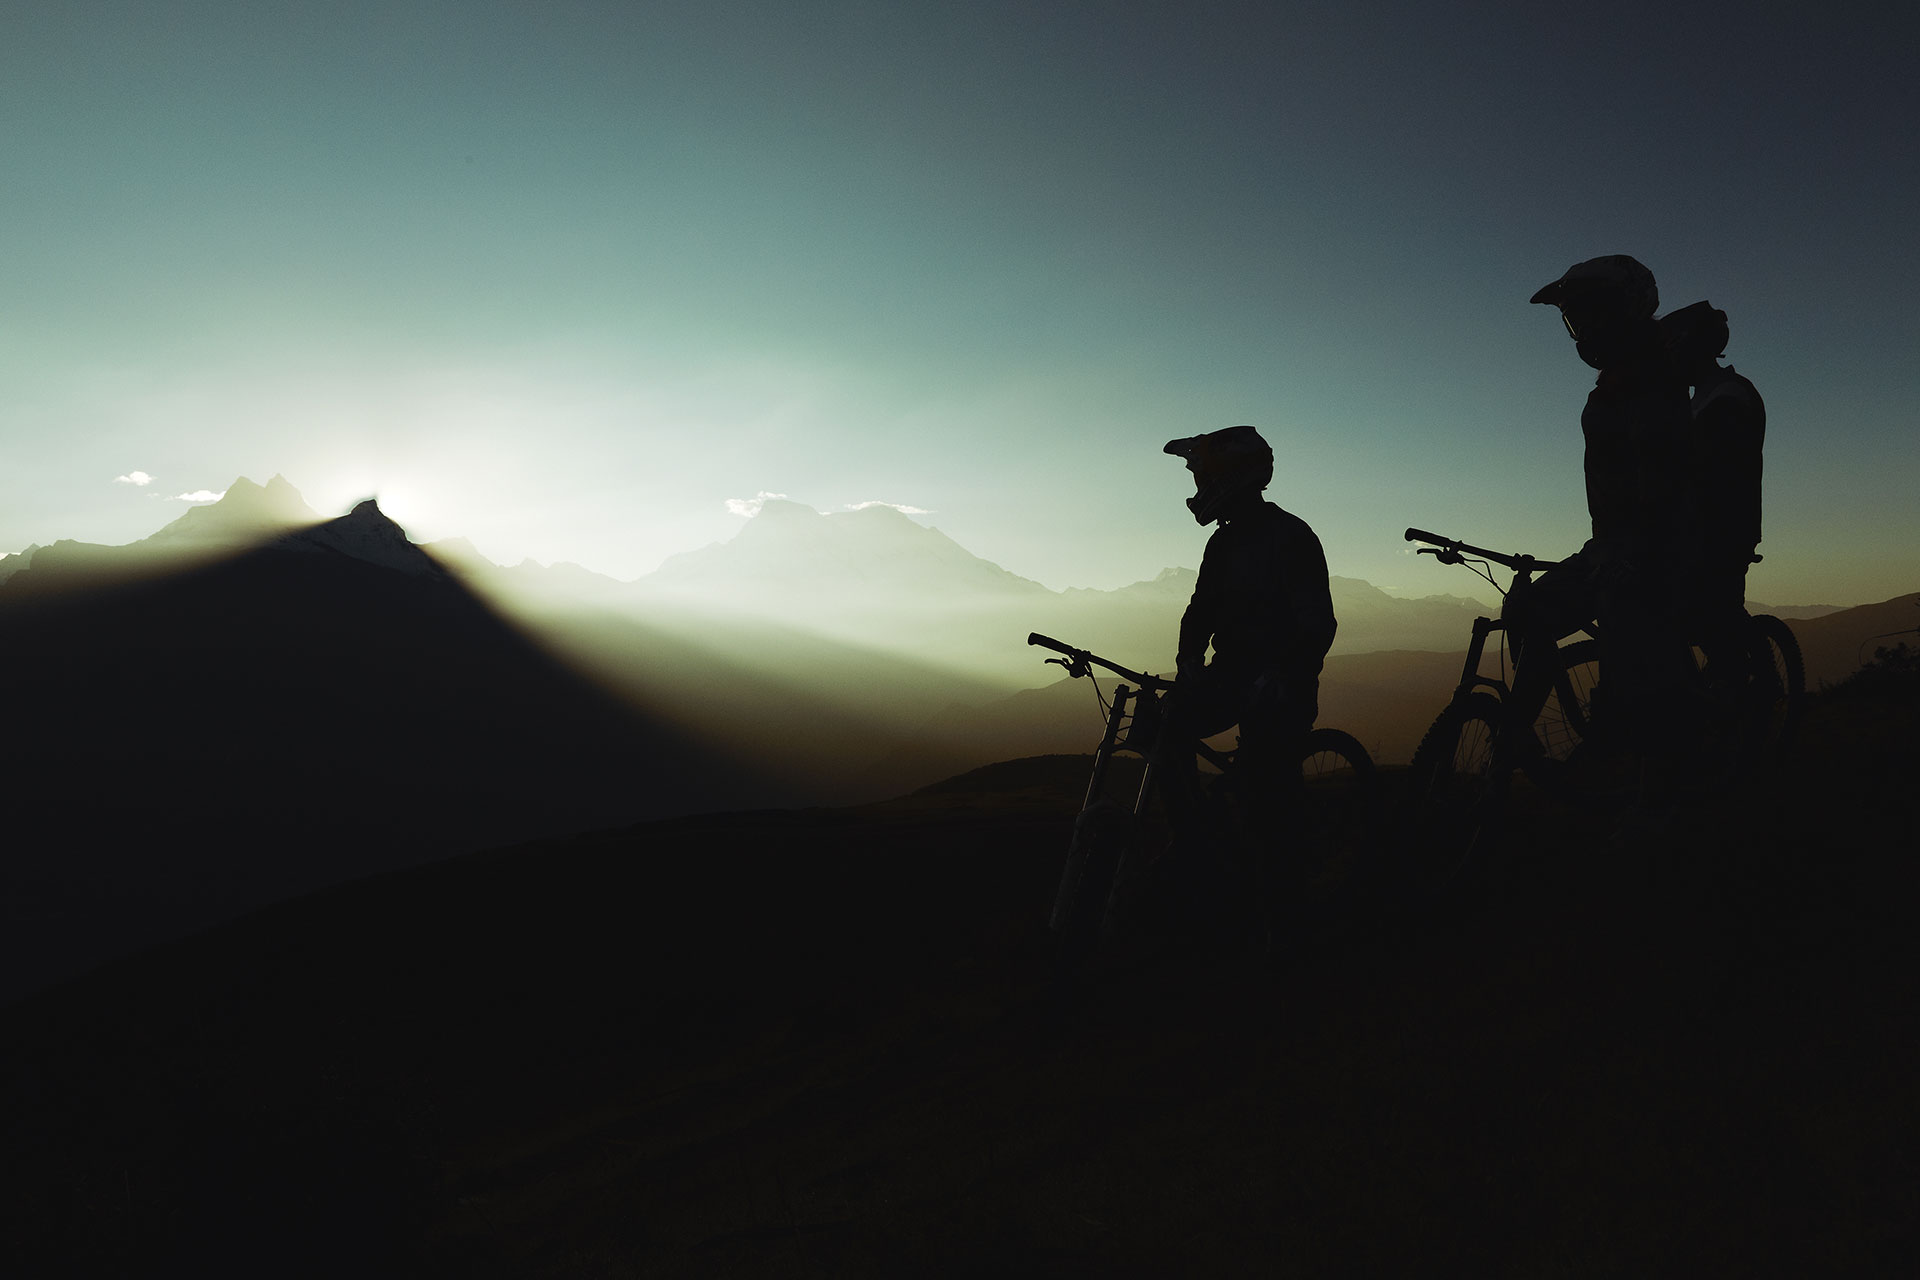 Peru Huascaran Mountainbike Freeride Fotograf Sport Lifestyle Reise People